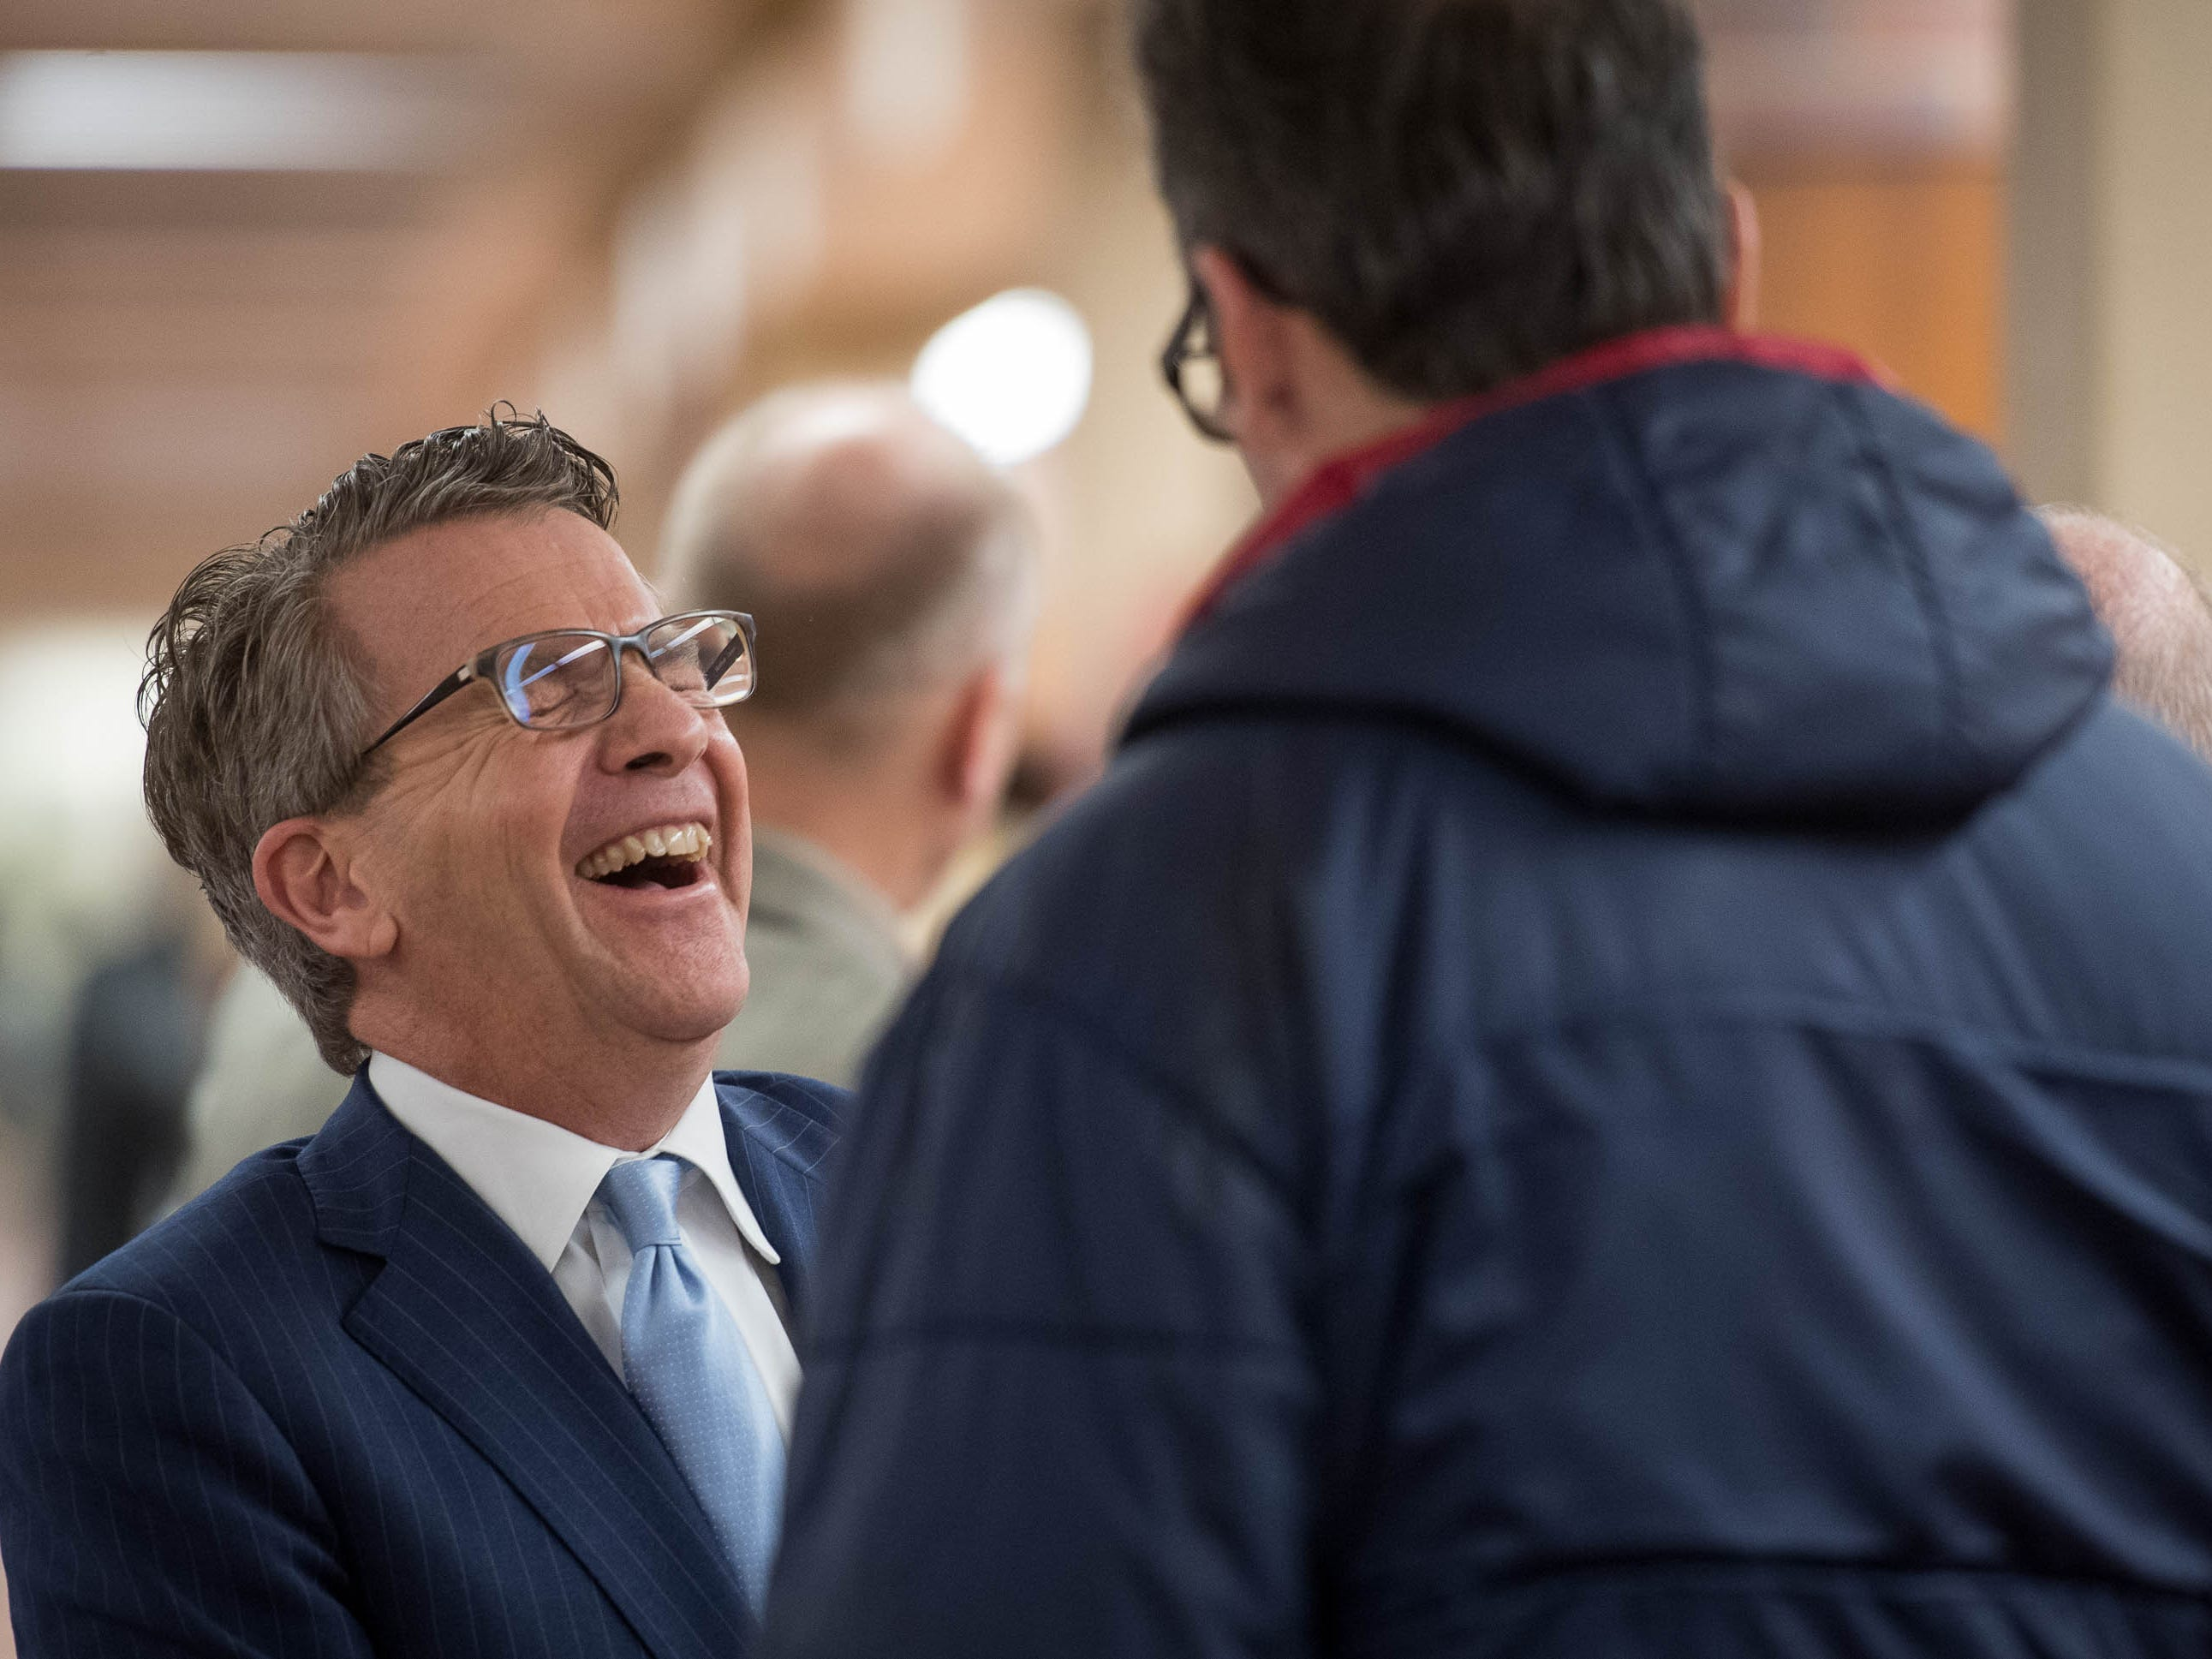 Evansville Mayor Lloyd Winnecke shares a laugh as he works his way through a gauntlet of supporters as he files for re-election at the Vanderburgh County Election Office Wednesday, January 9, 2019.